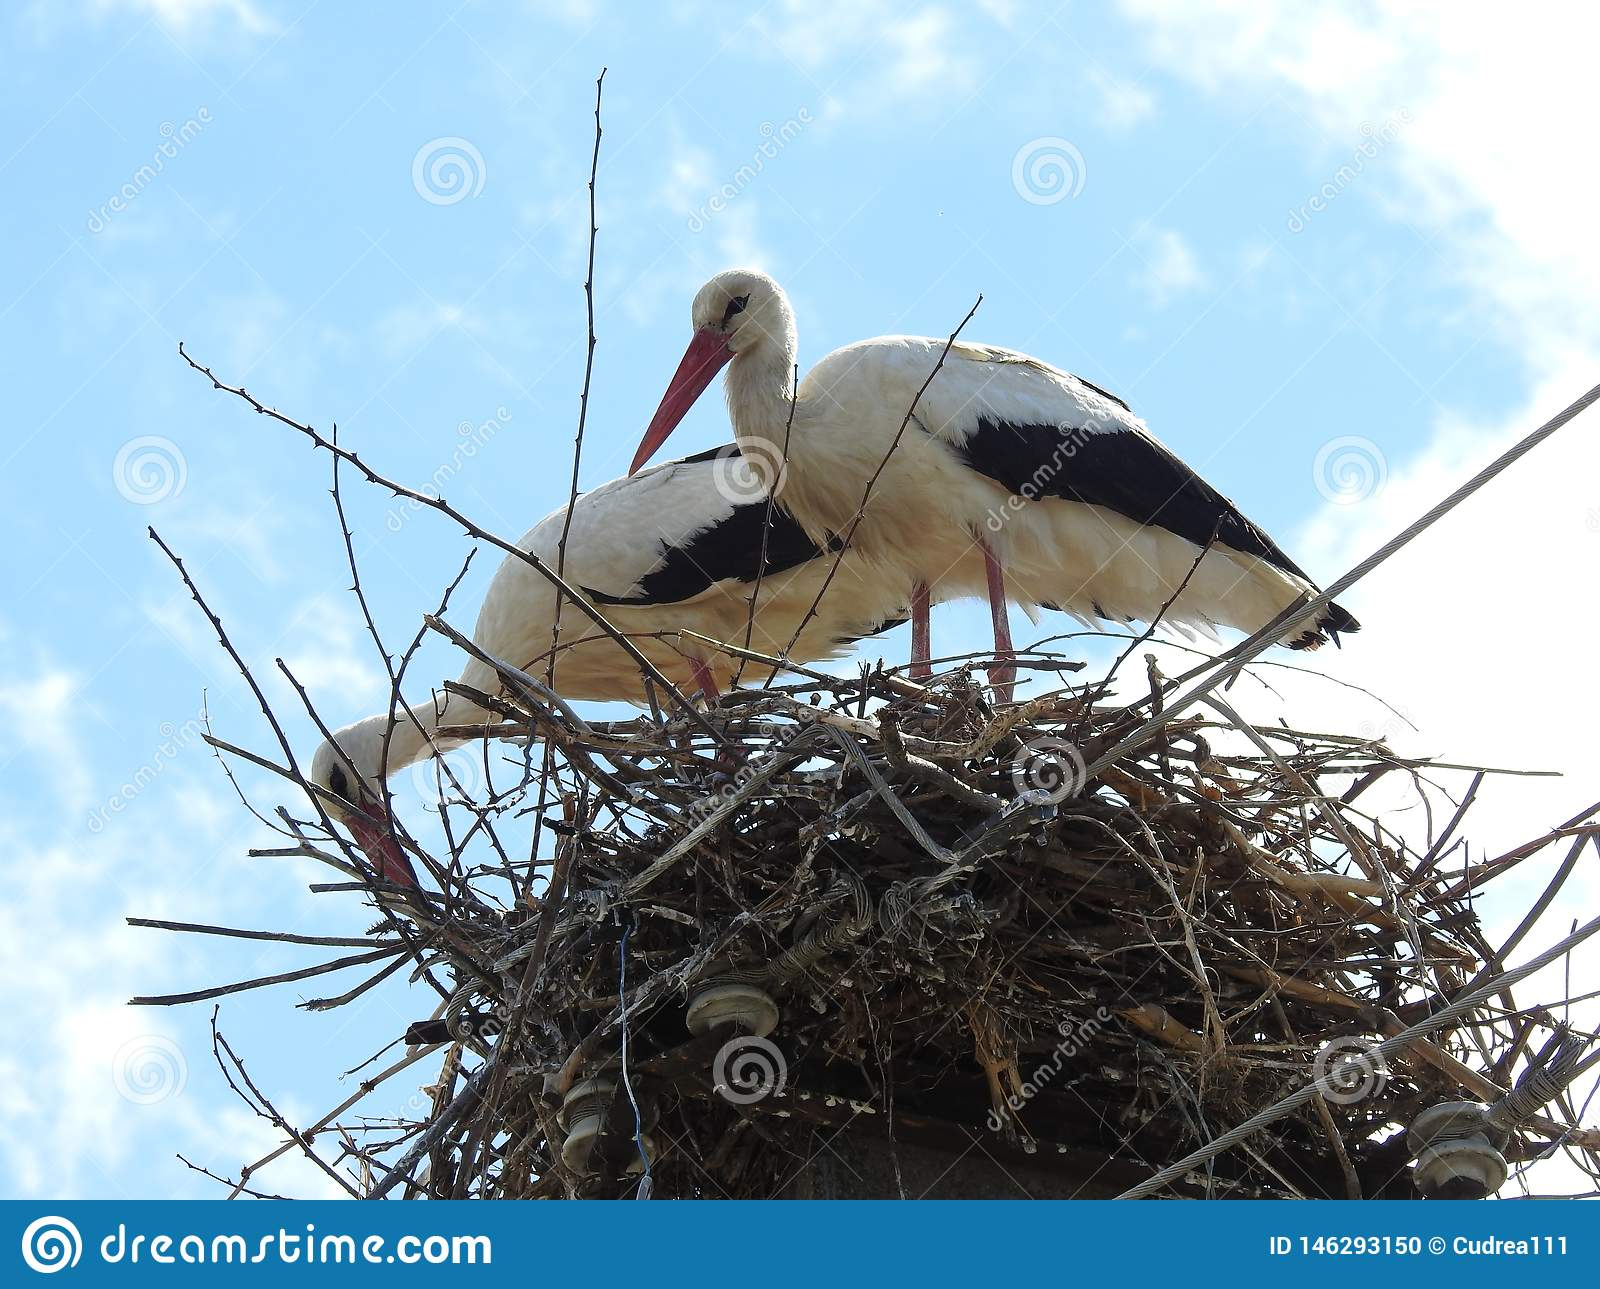 The storks constituting the nest.